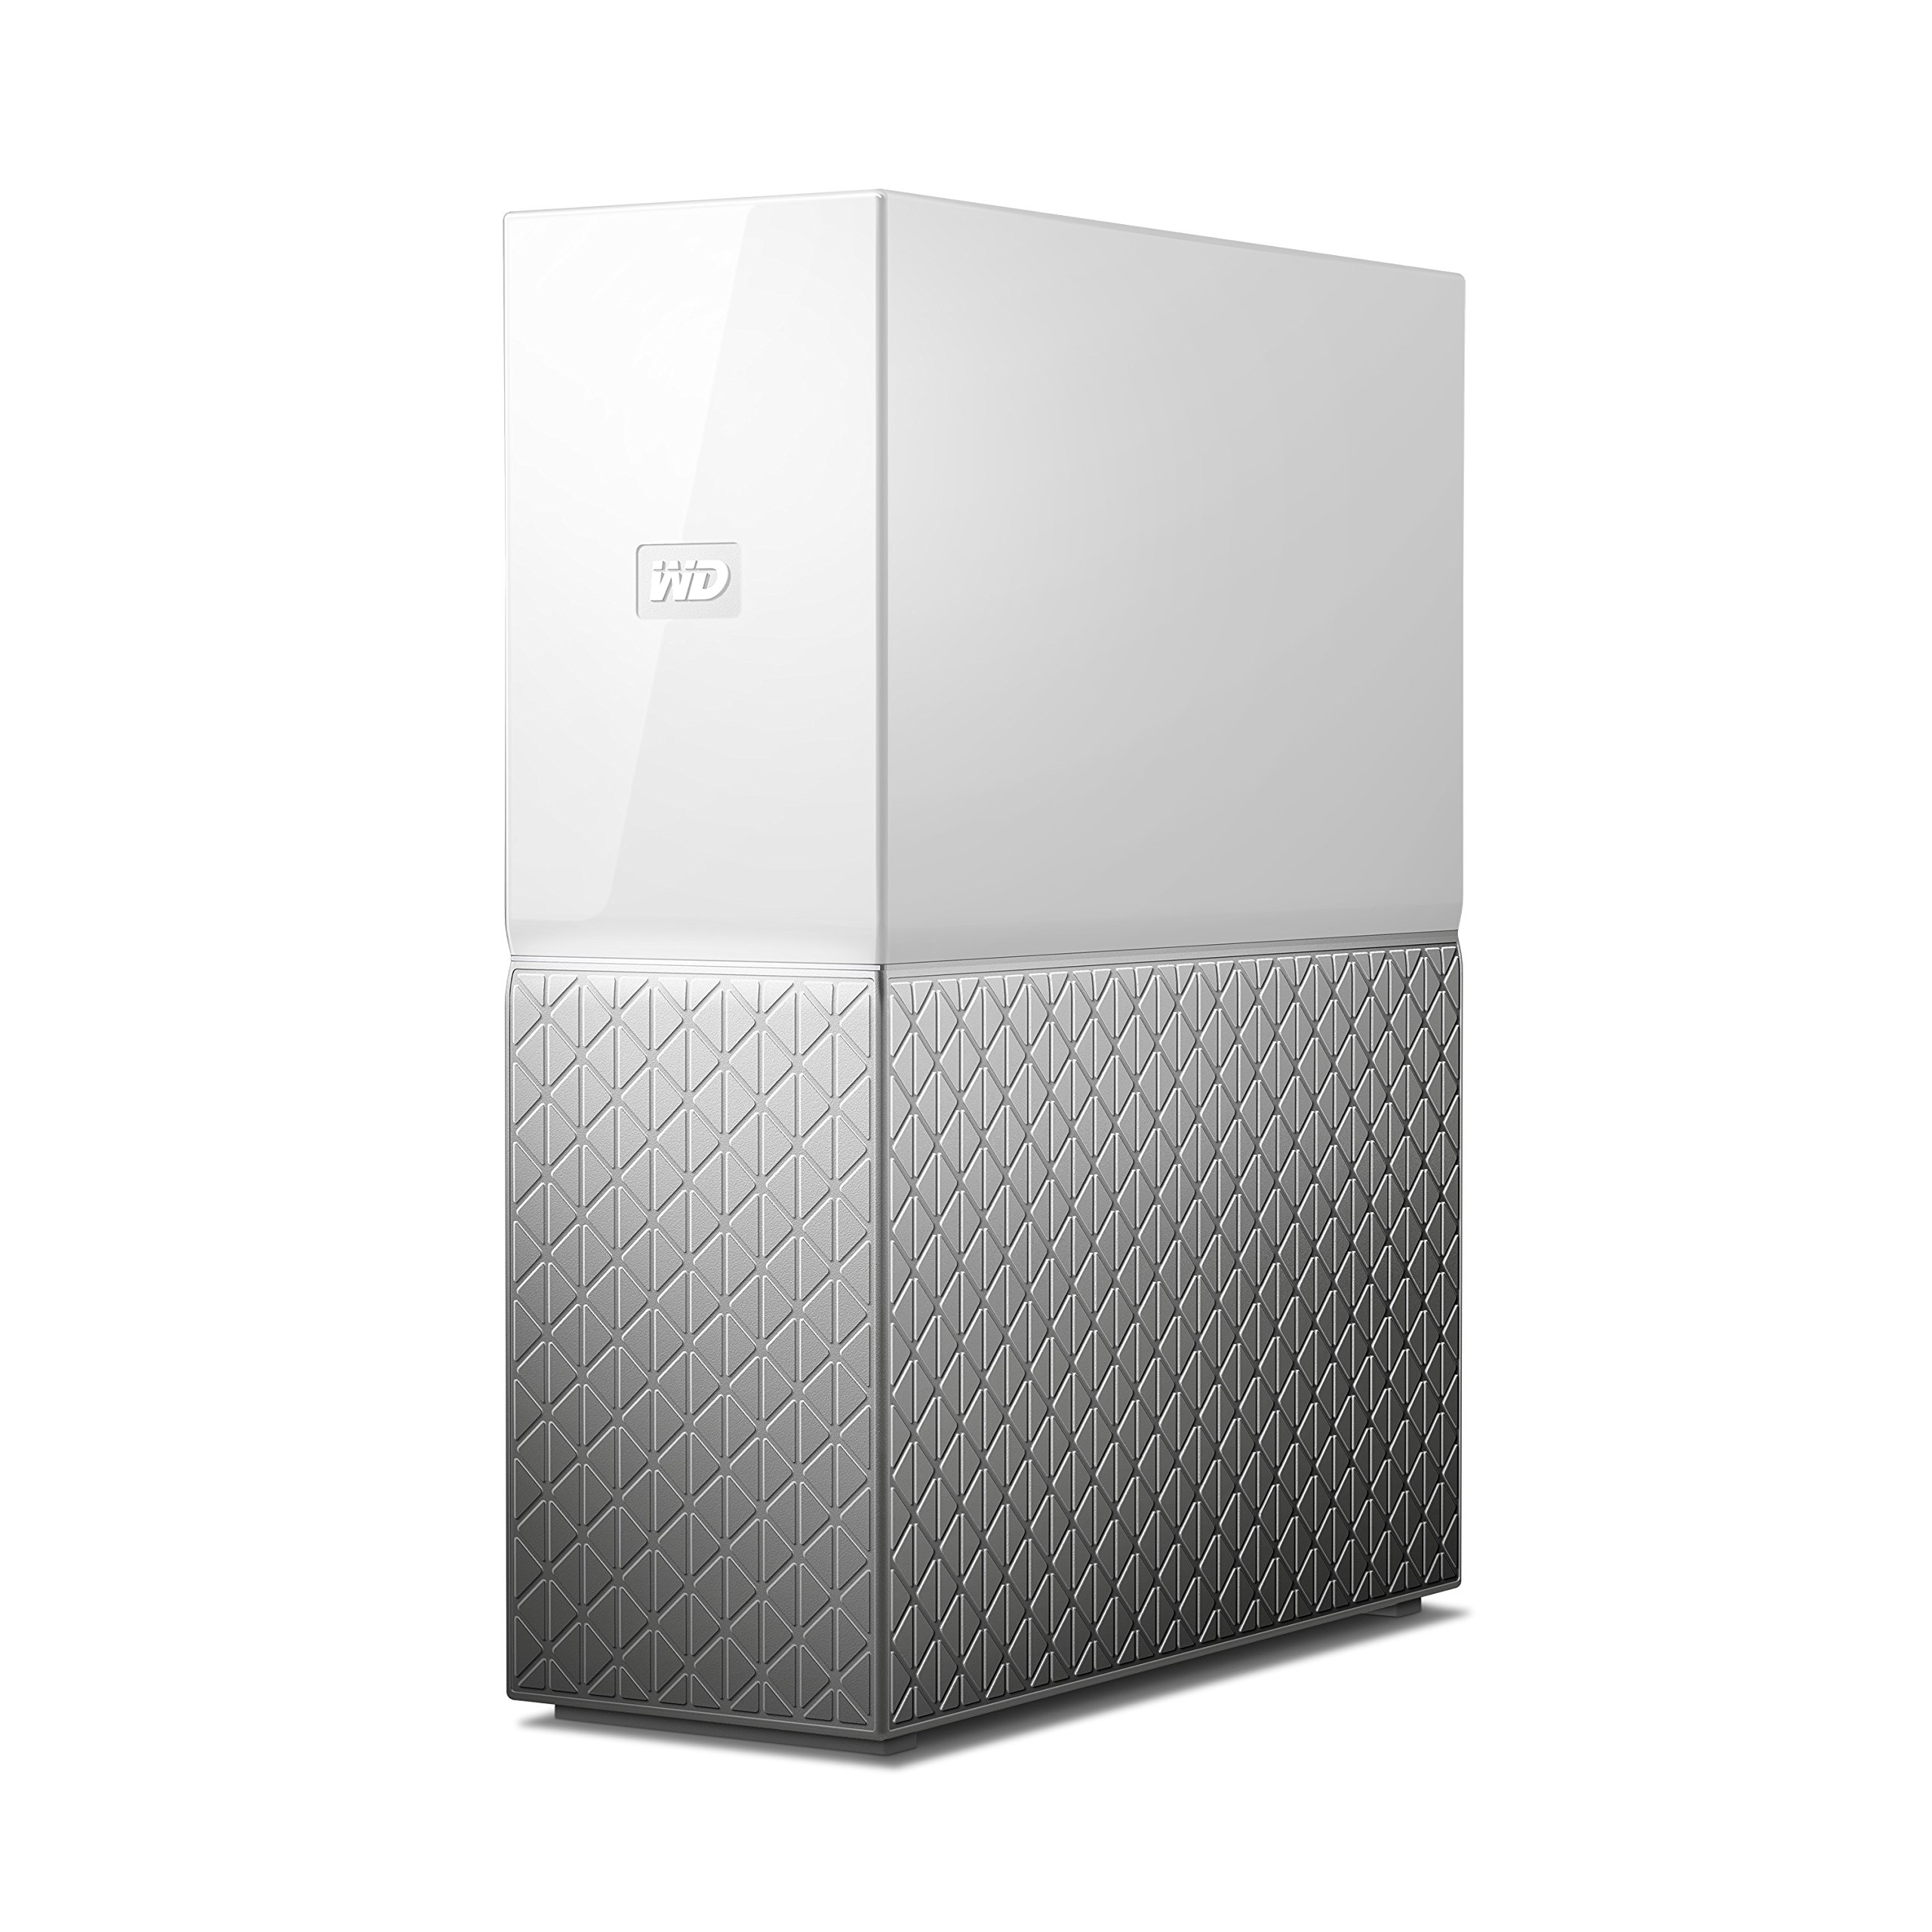 WD 8TB My Cloud Home Personal Cloud Storage - WDBVXC0080HWT-NESN by Western Digital (Image #1)